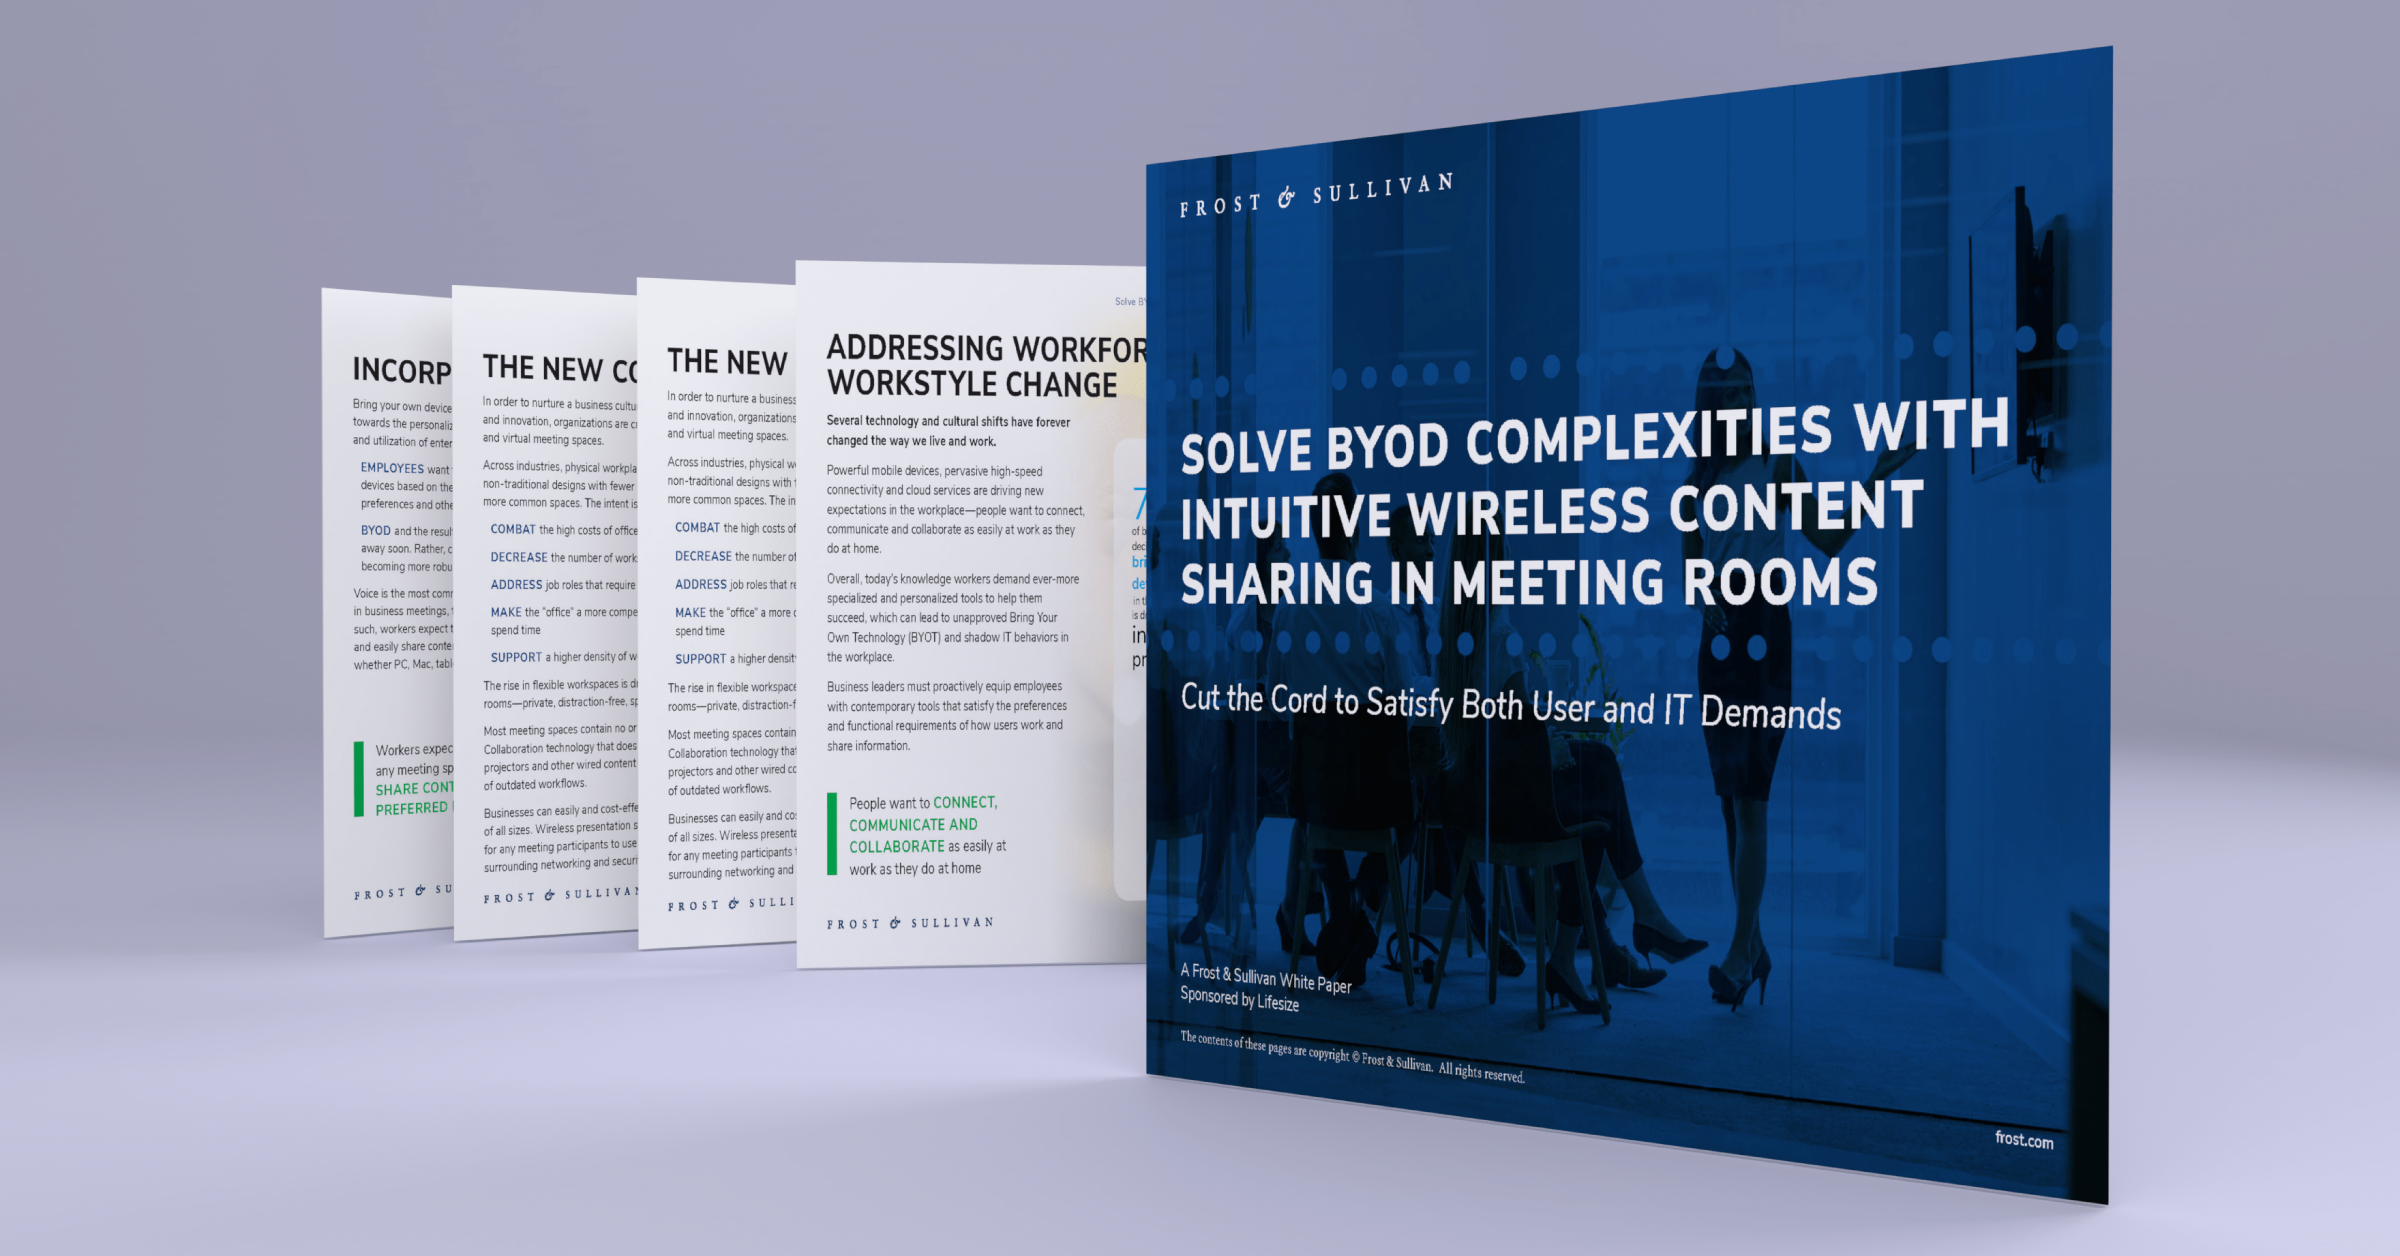 Learn how to choose future-proof investments that modernize your meeting rooms for the new connected workforce.